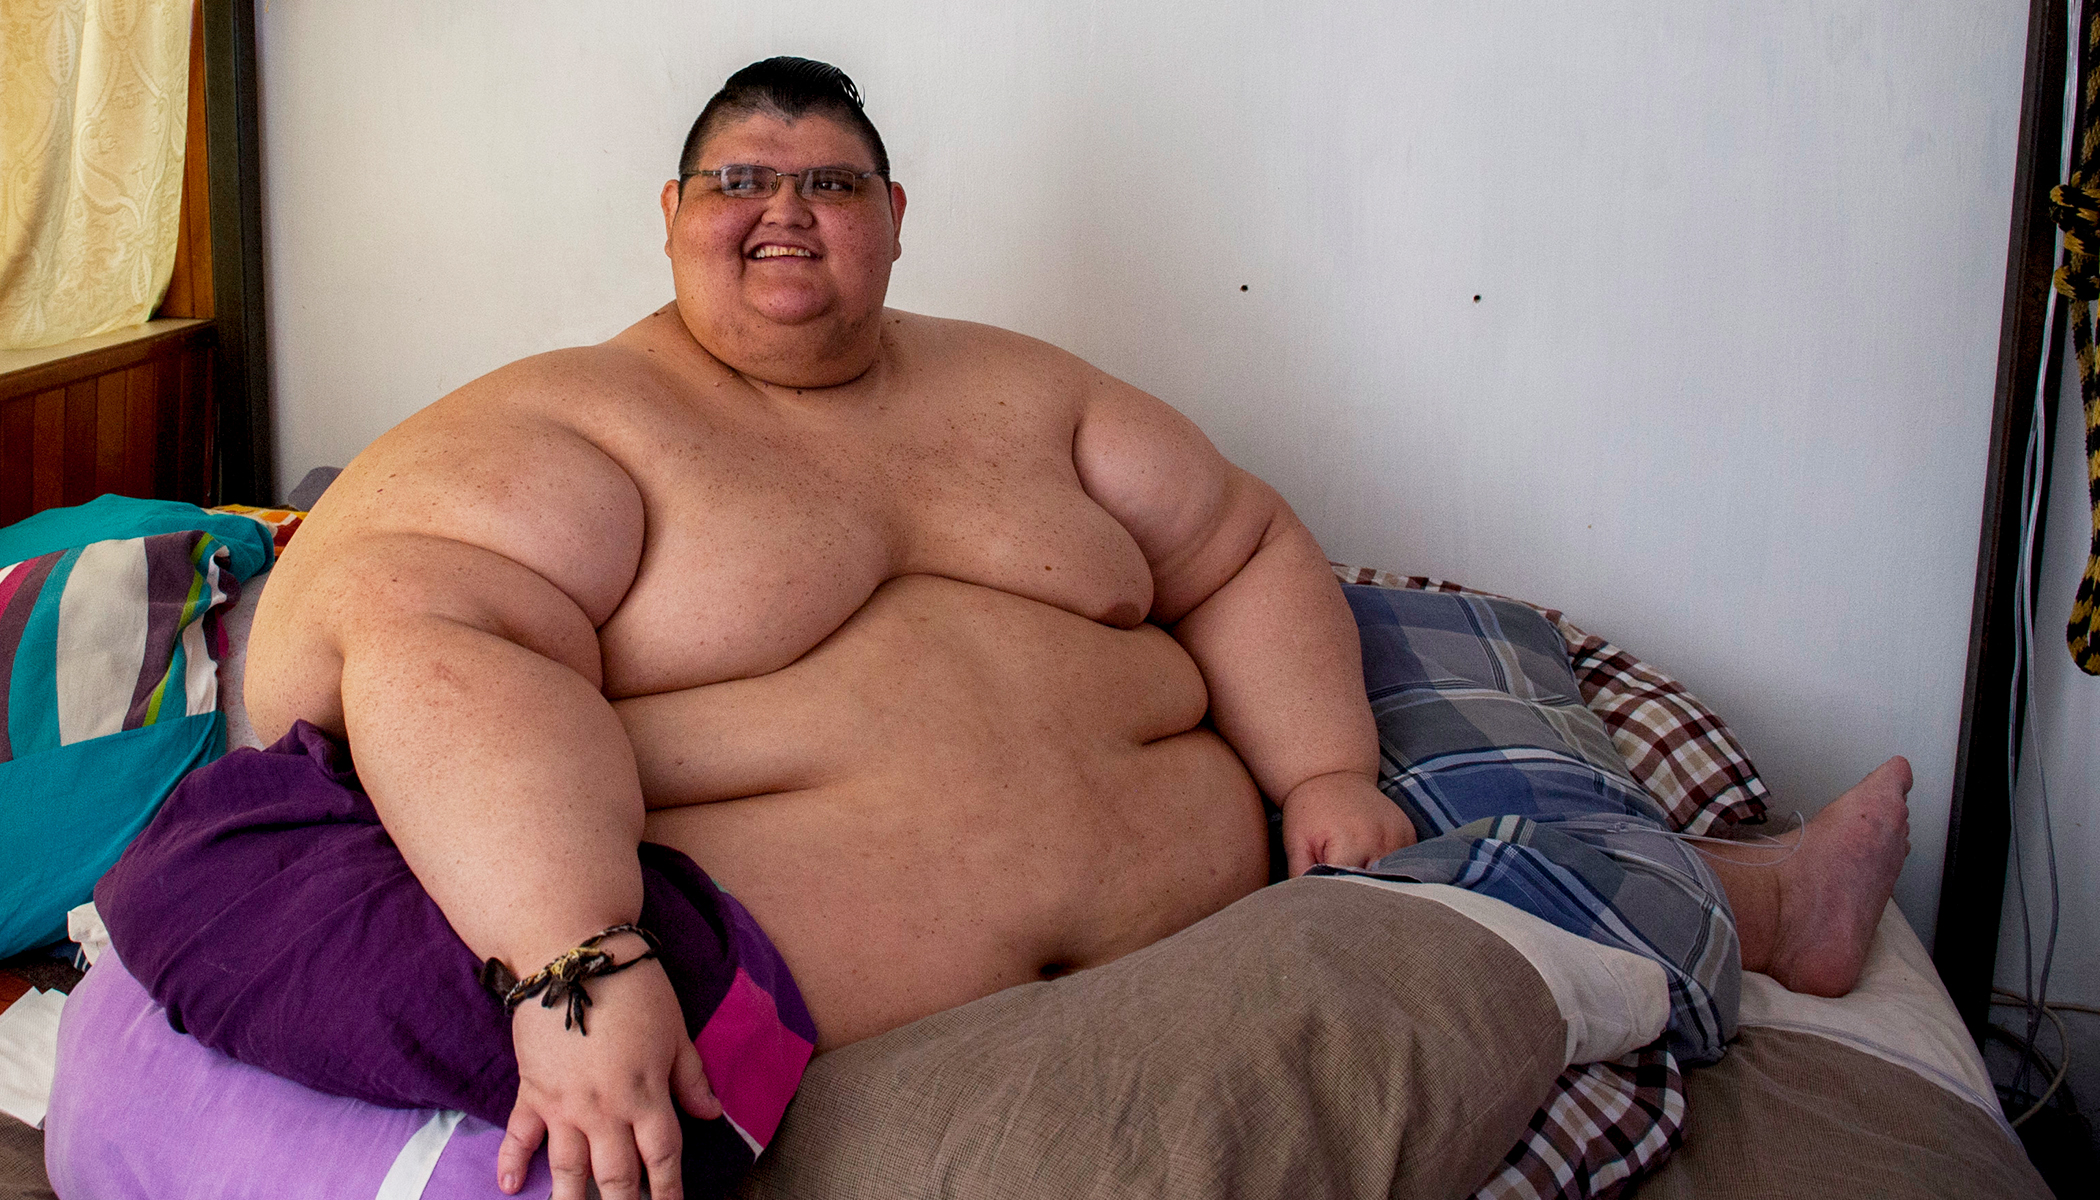 World S Fattest Man Loses 728 Pounds Leaves Bed Walks On Own 2 Feet For The First Time In 10 Years